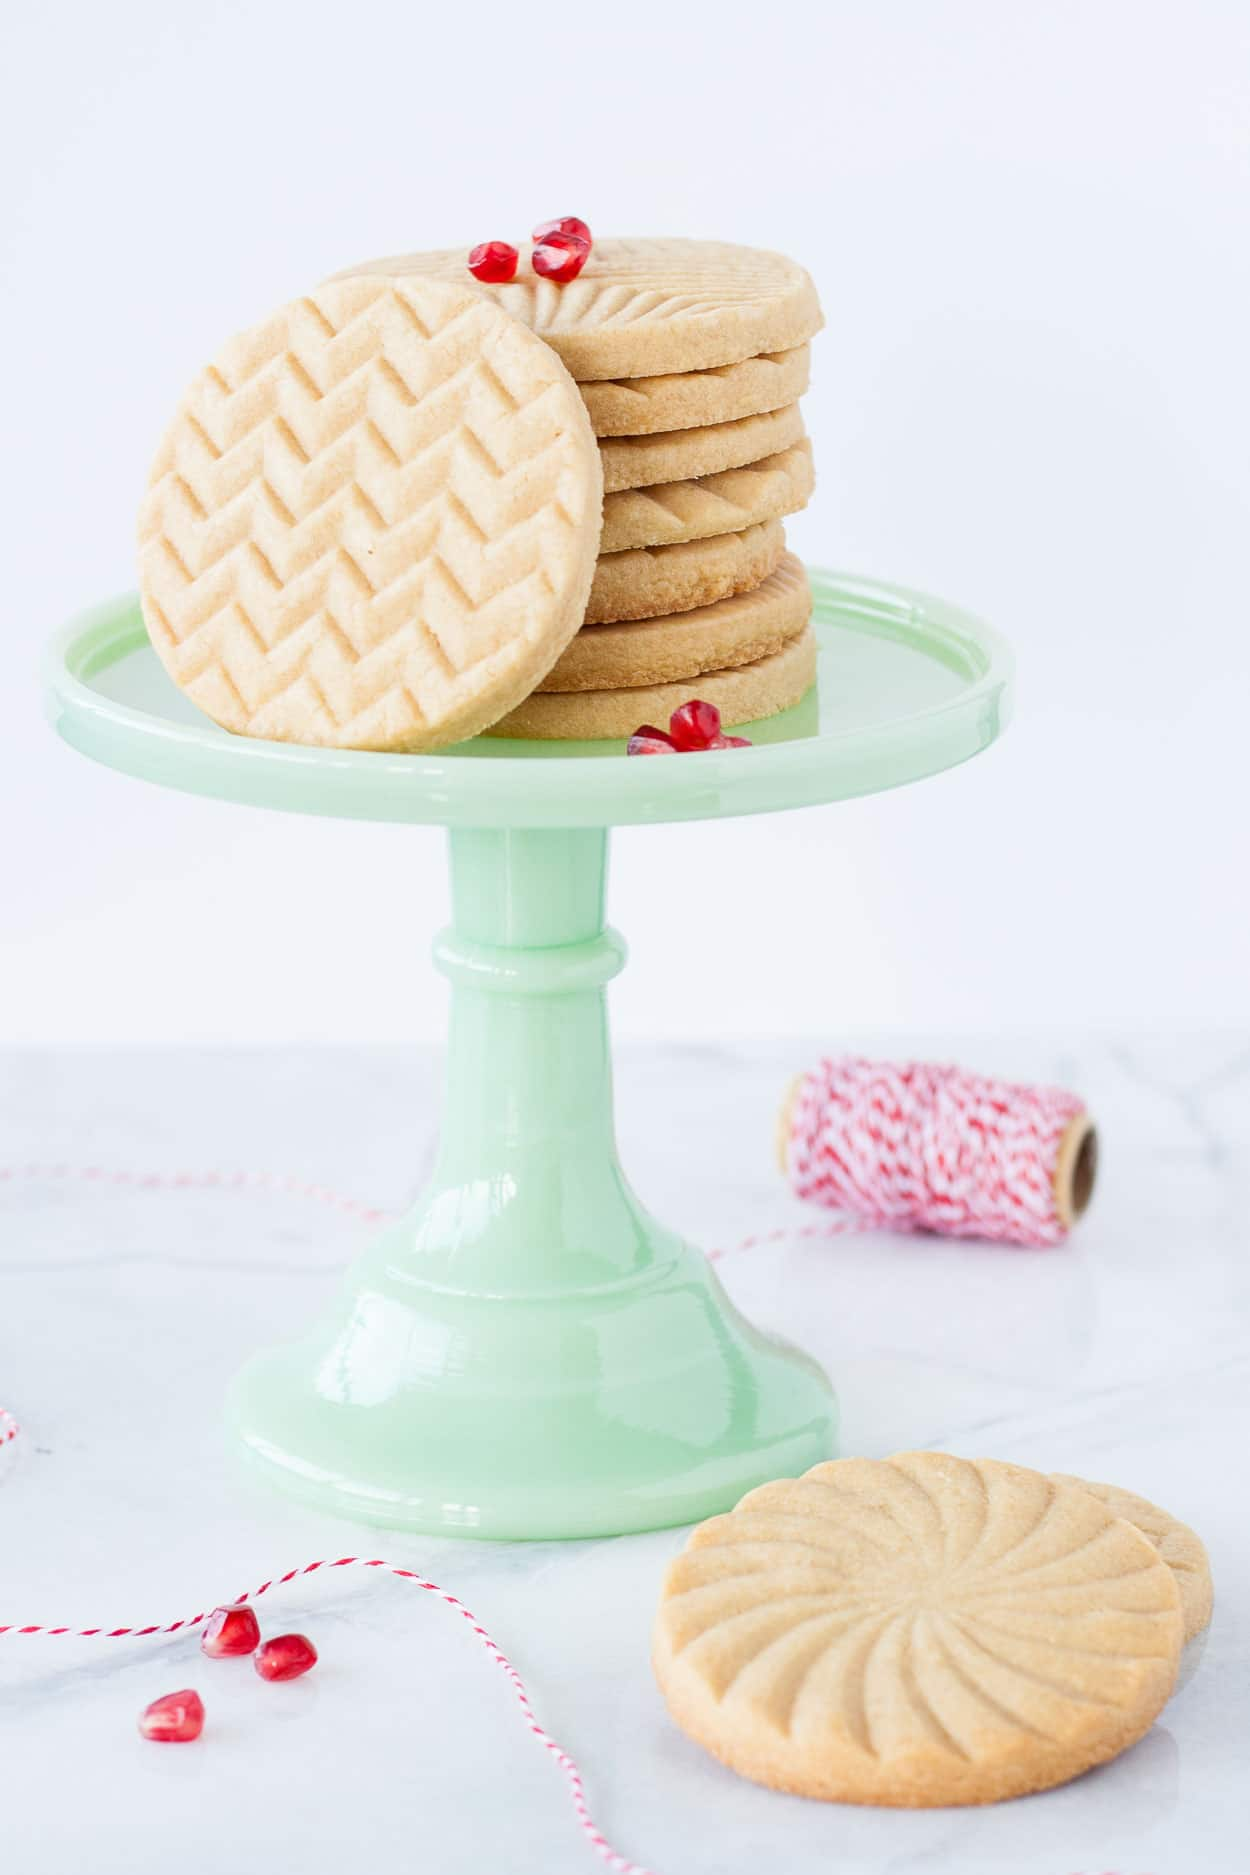 Cookies on a green cake stand.